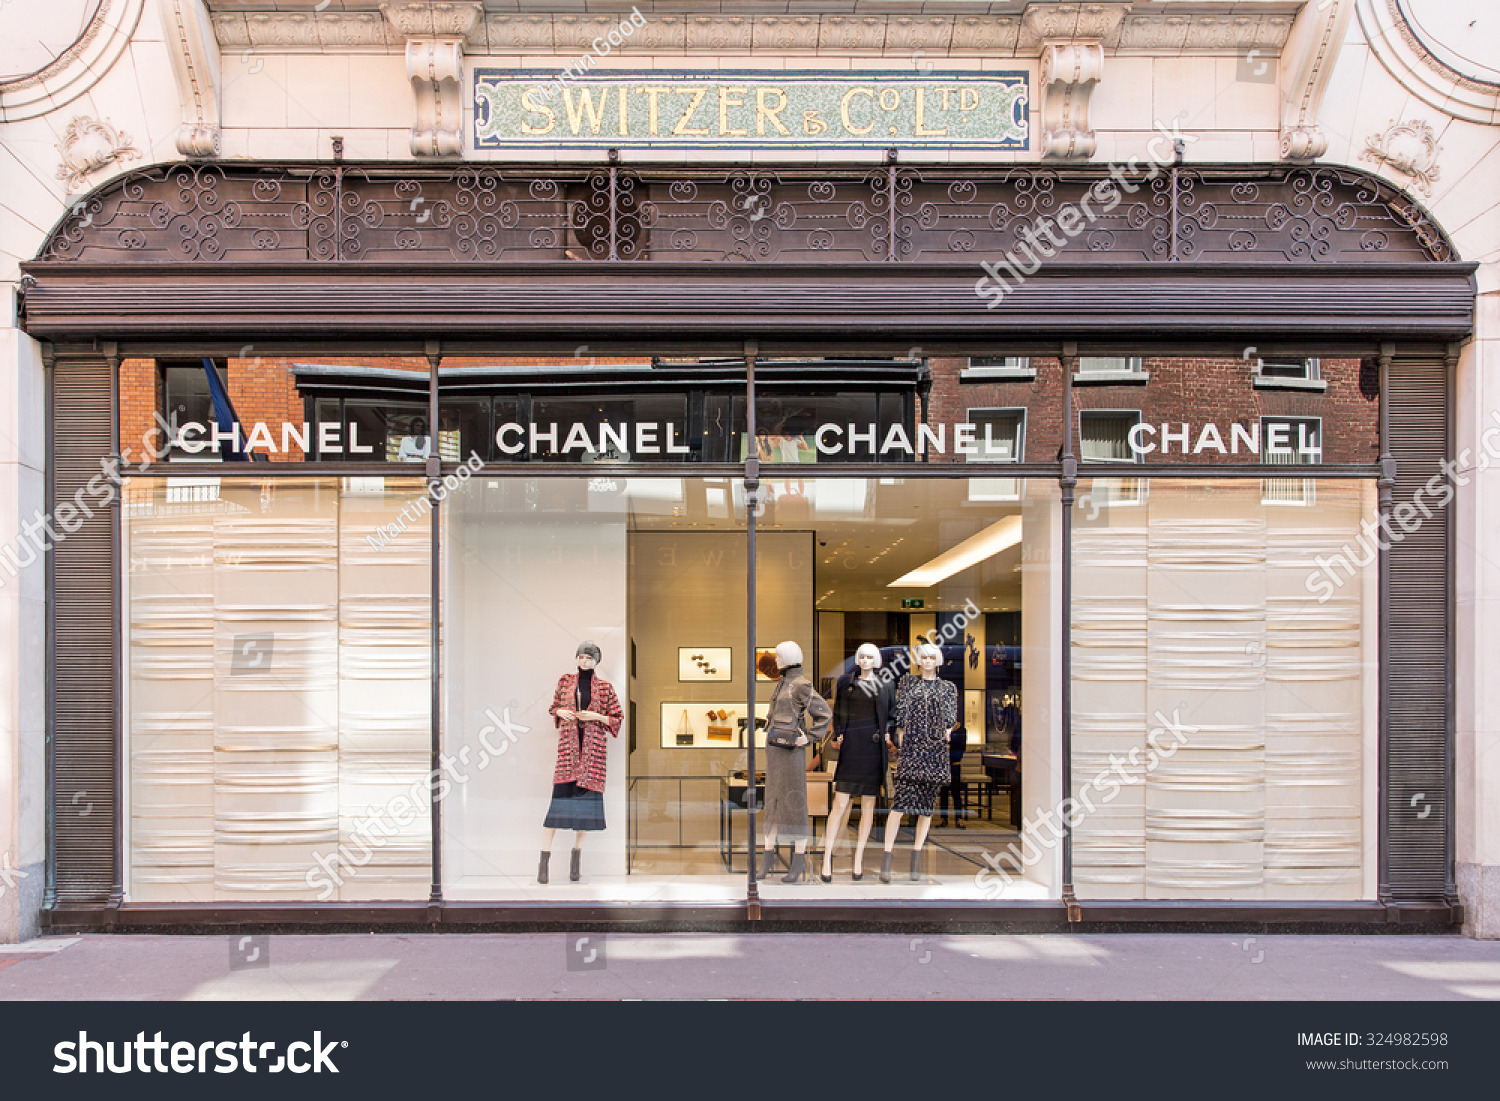 chanel outlet. dublin, ireland - august 13, 2015: a chanel outlet. worldwide, chanel outlet u